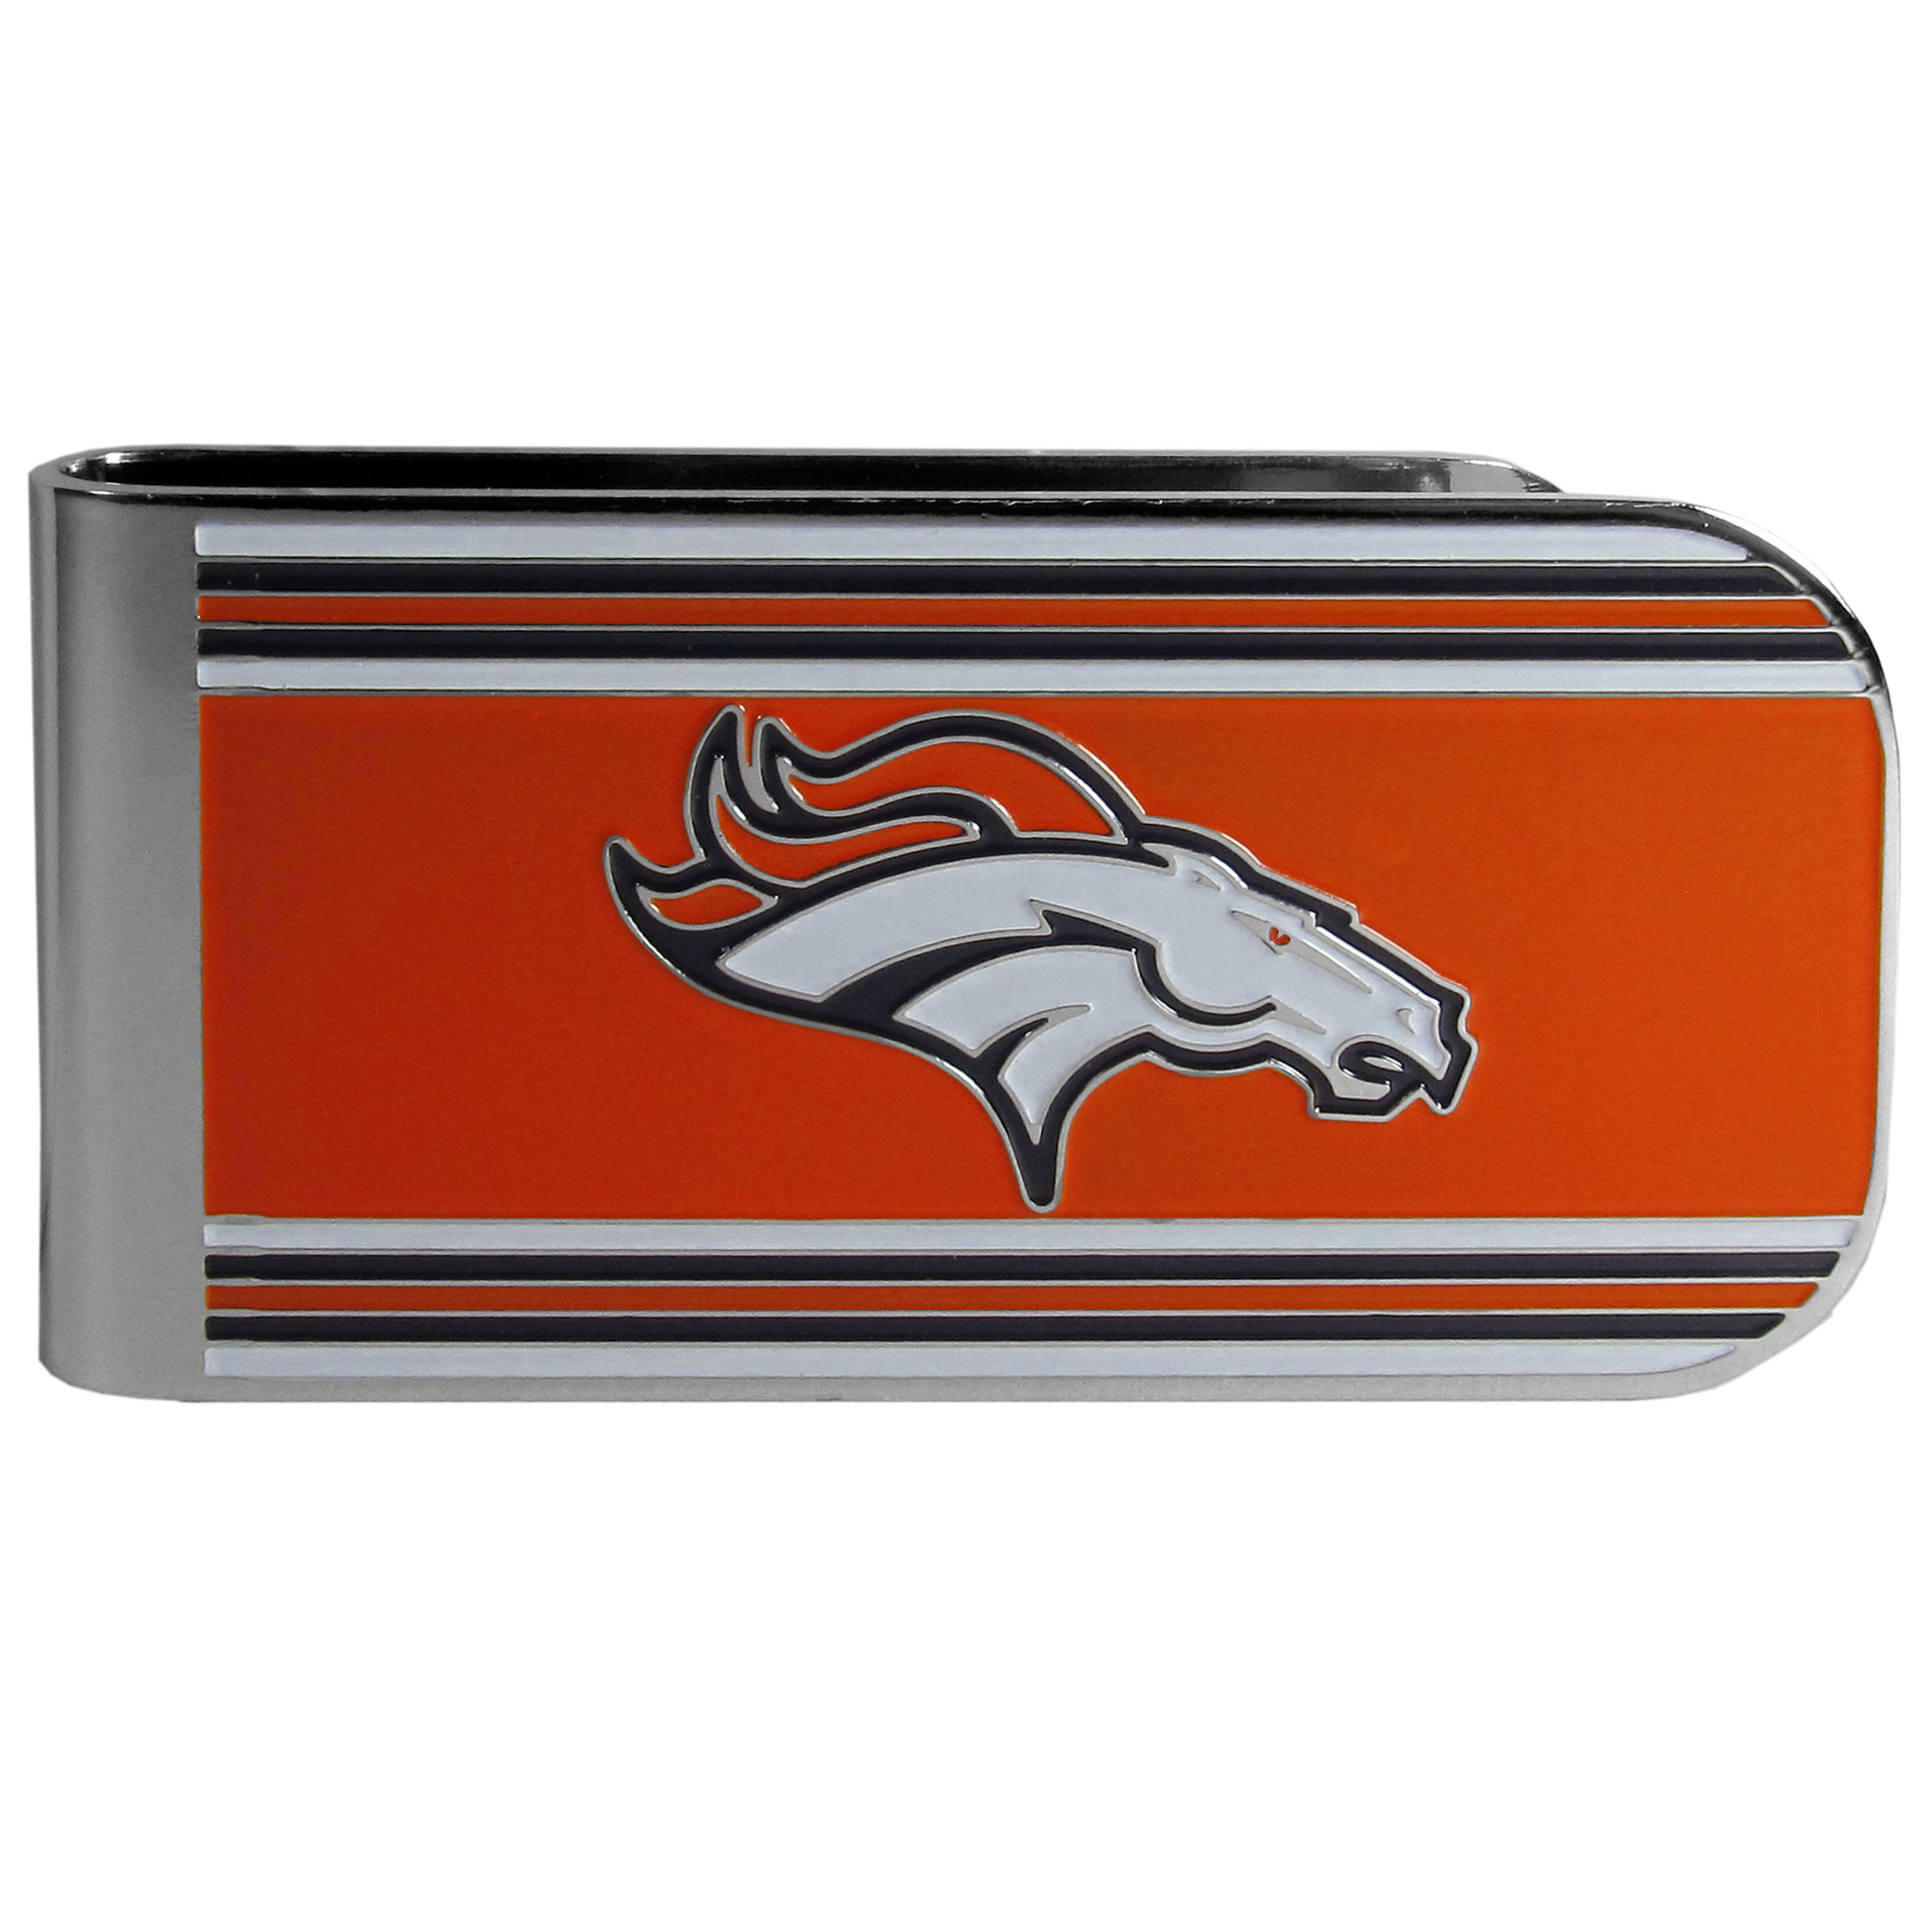 Denver Broncos MVP Money Clip - Our MVP money clip is made of high quality steel with a chrome overlay and enameled team colors and logo. The exceptional craftmanship on this piece makes it a men's fashion accessory that any fan would be proud to own. The cast detail in the Denver Broncos logo is perfectly detailed. The clip features an inner spring to hold your cash and cards securely in place.